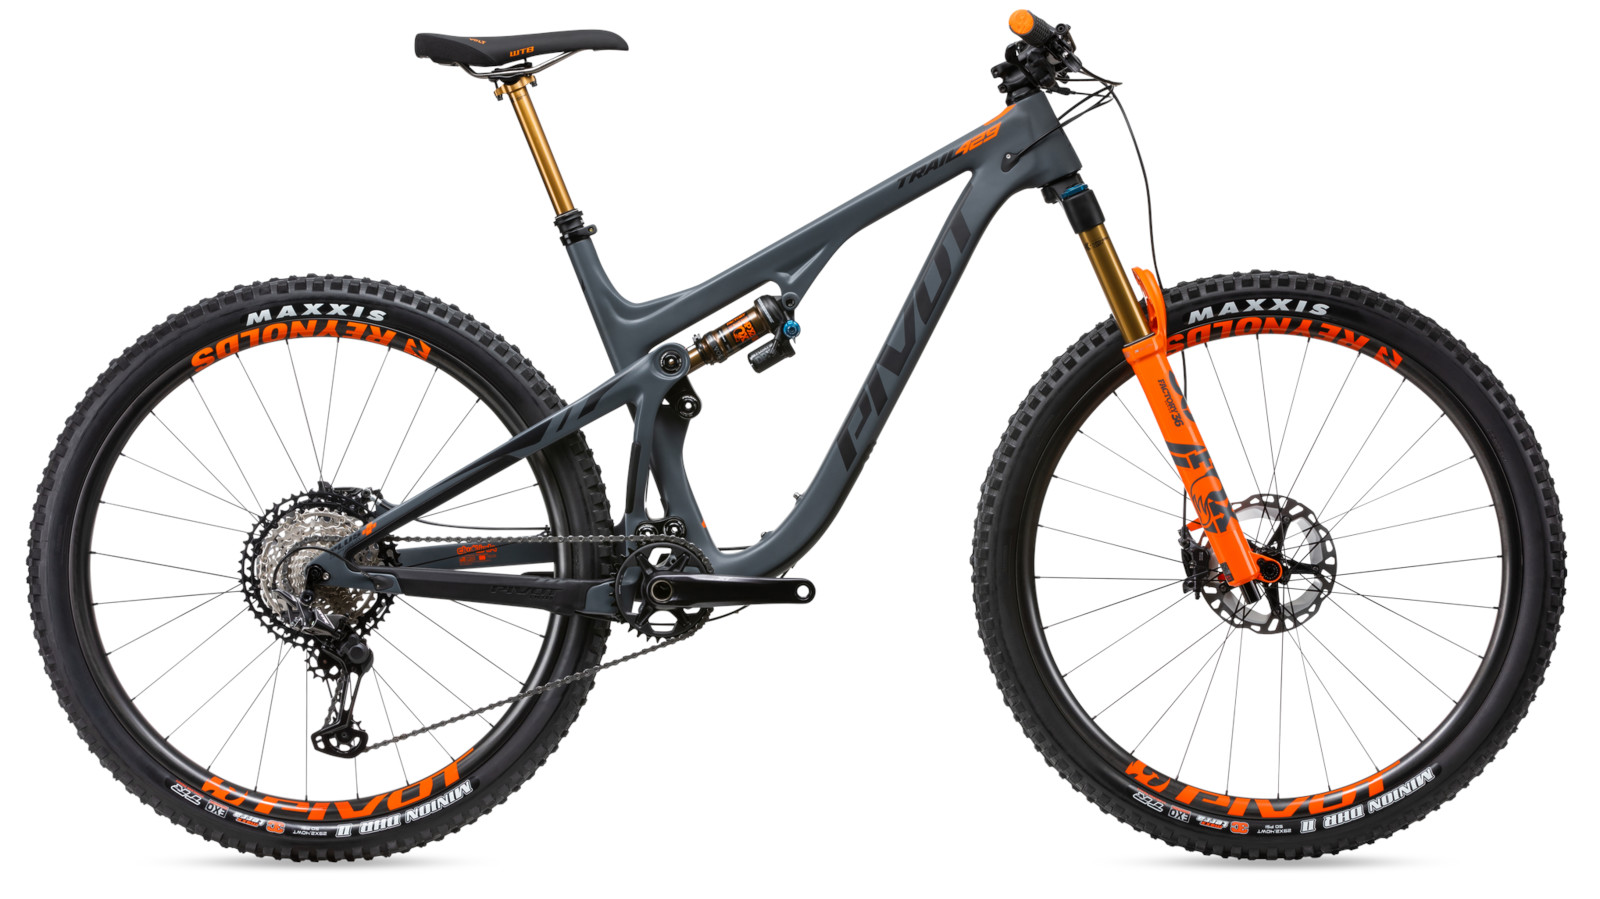 Pivot's New Trail 429 Enduro Build Gets a Bump in Travel and an Aggressive Attitude